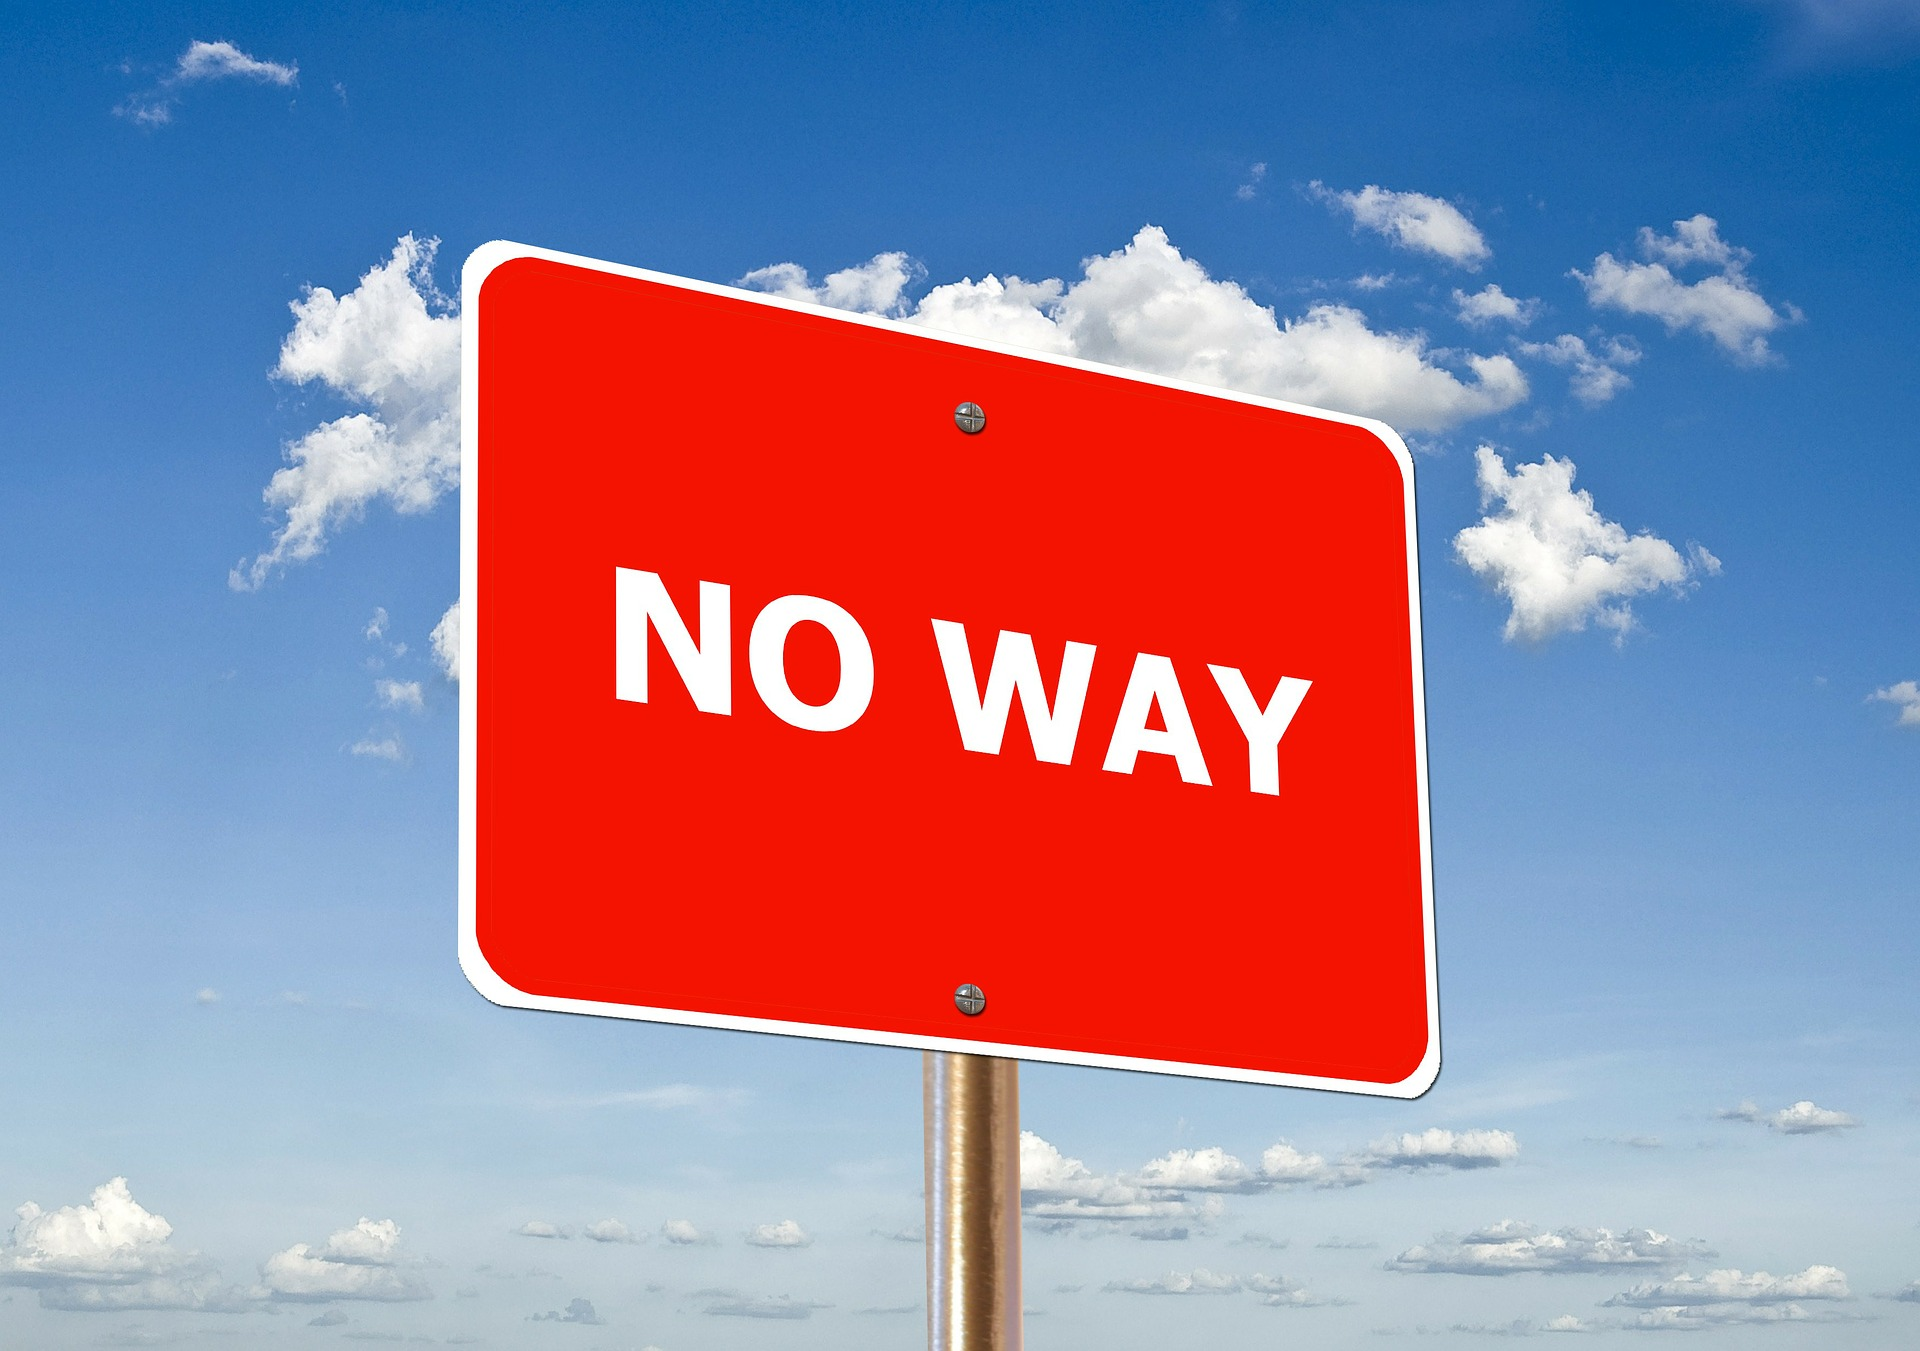 Online Income Access Review - 'No Way' signage